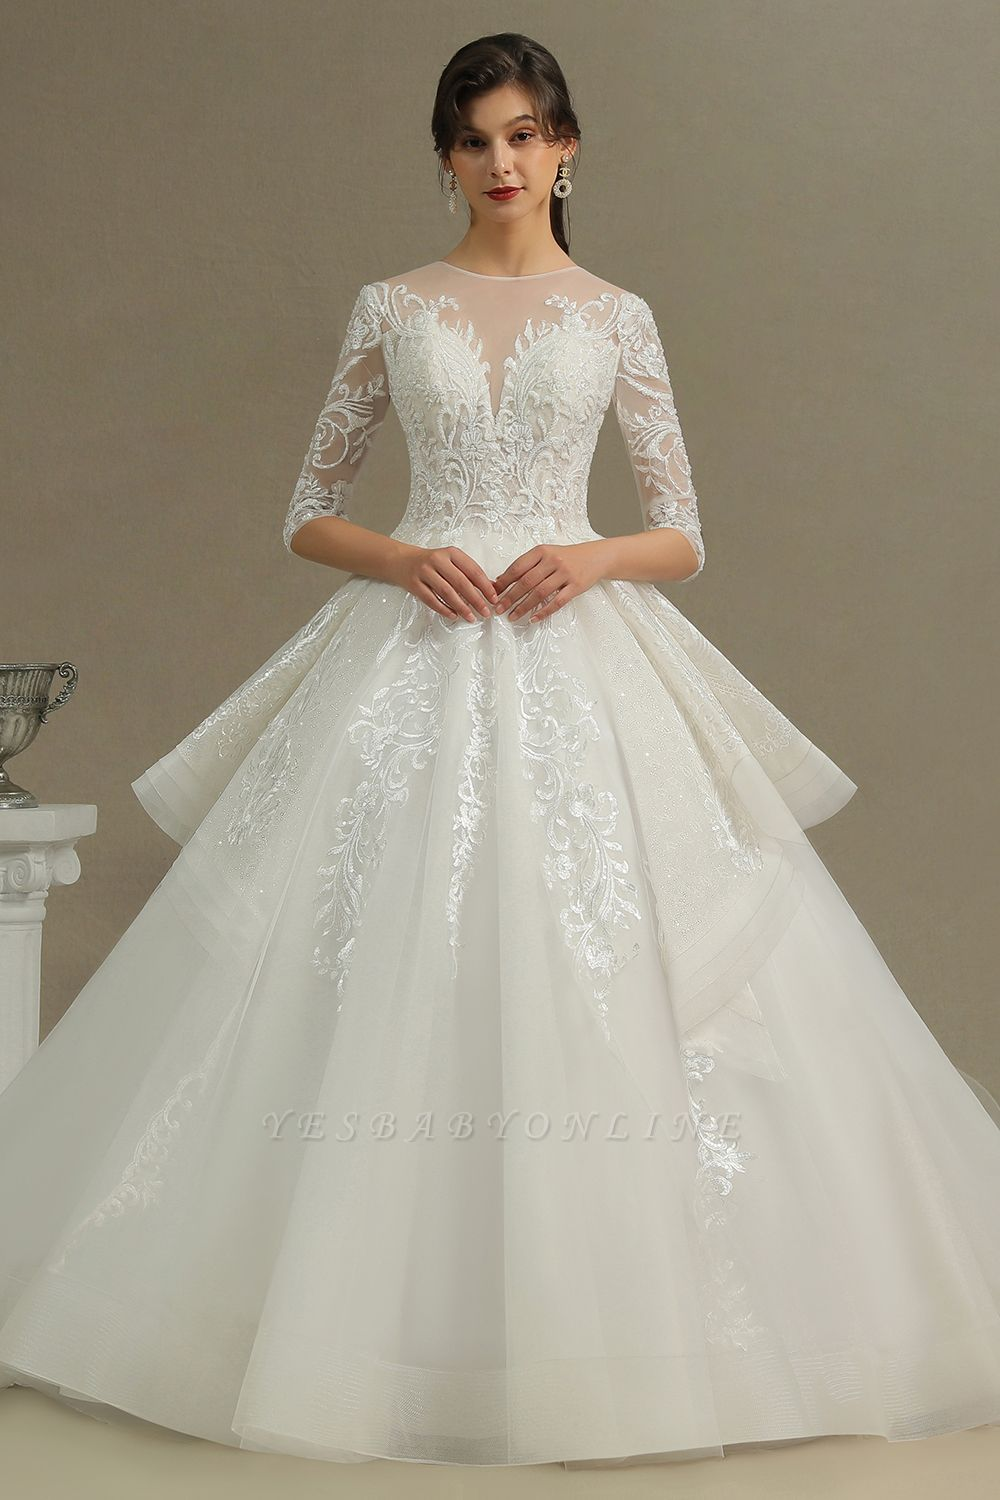 Luxury Long Sleeves Lace Bridal Gowns Floral Crew Neck A Line Spring Garden Dress